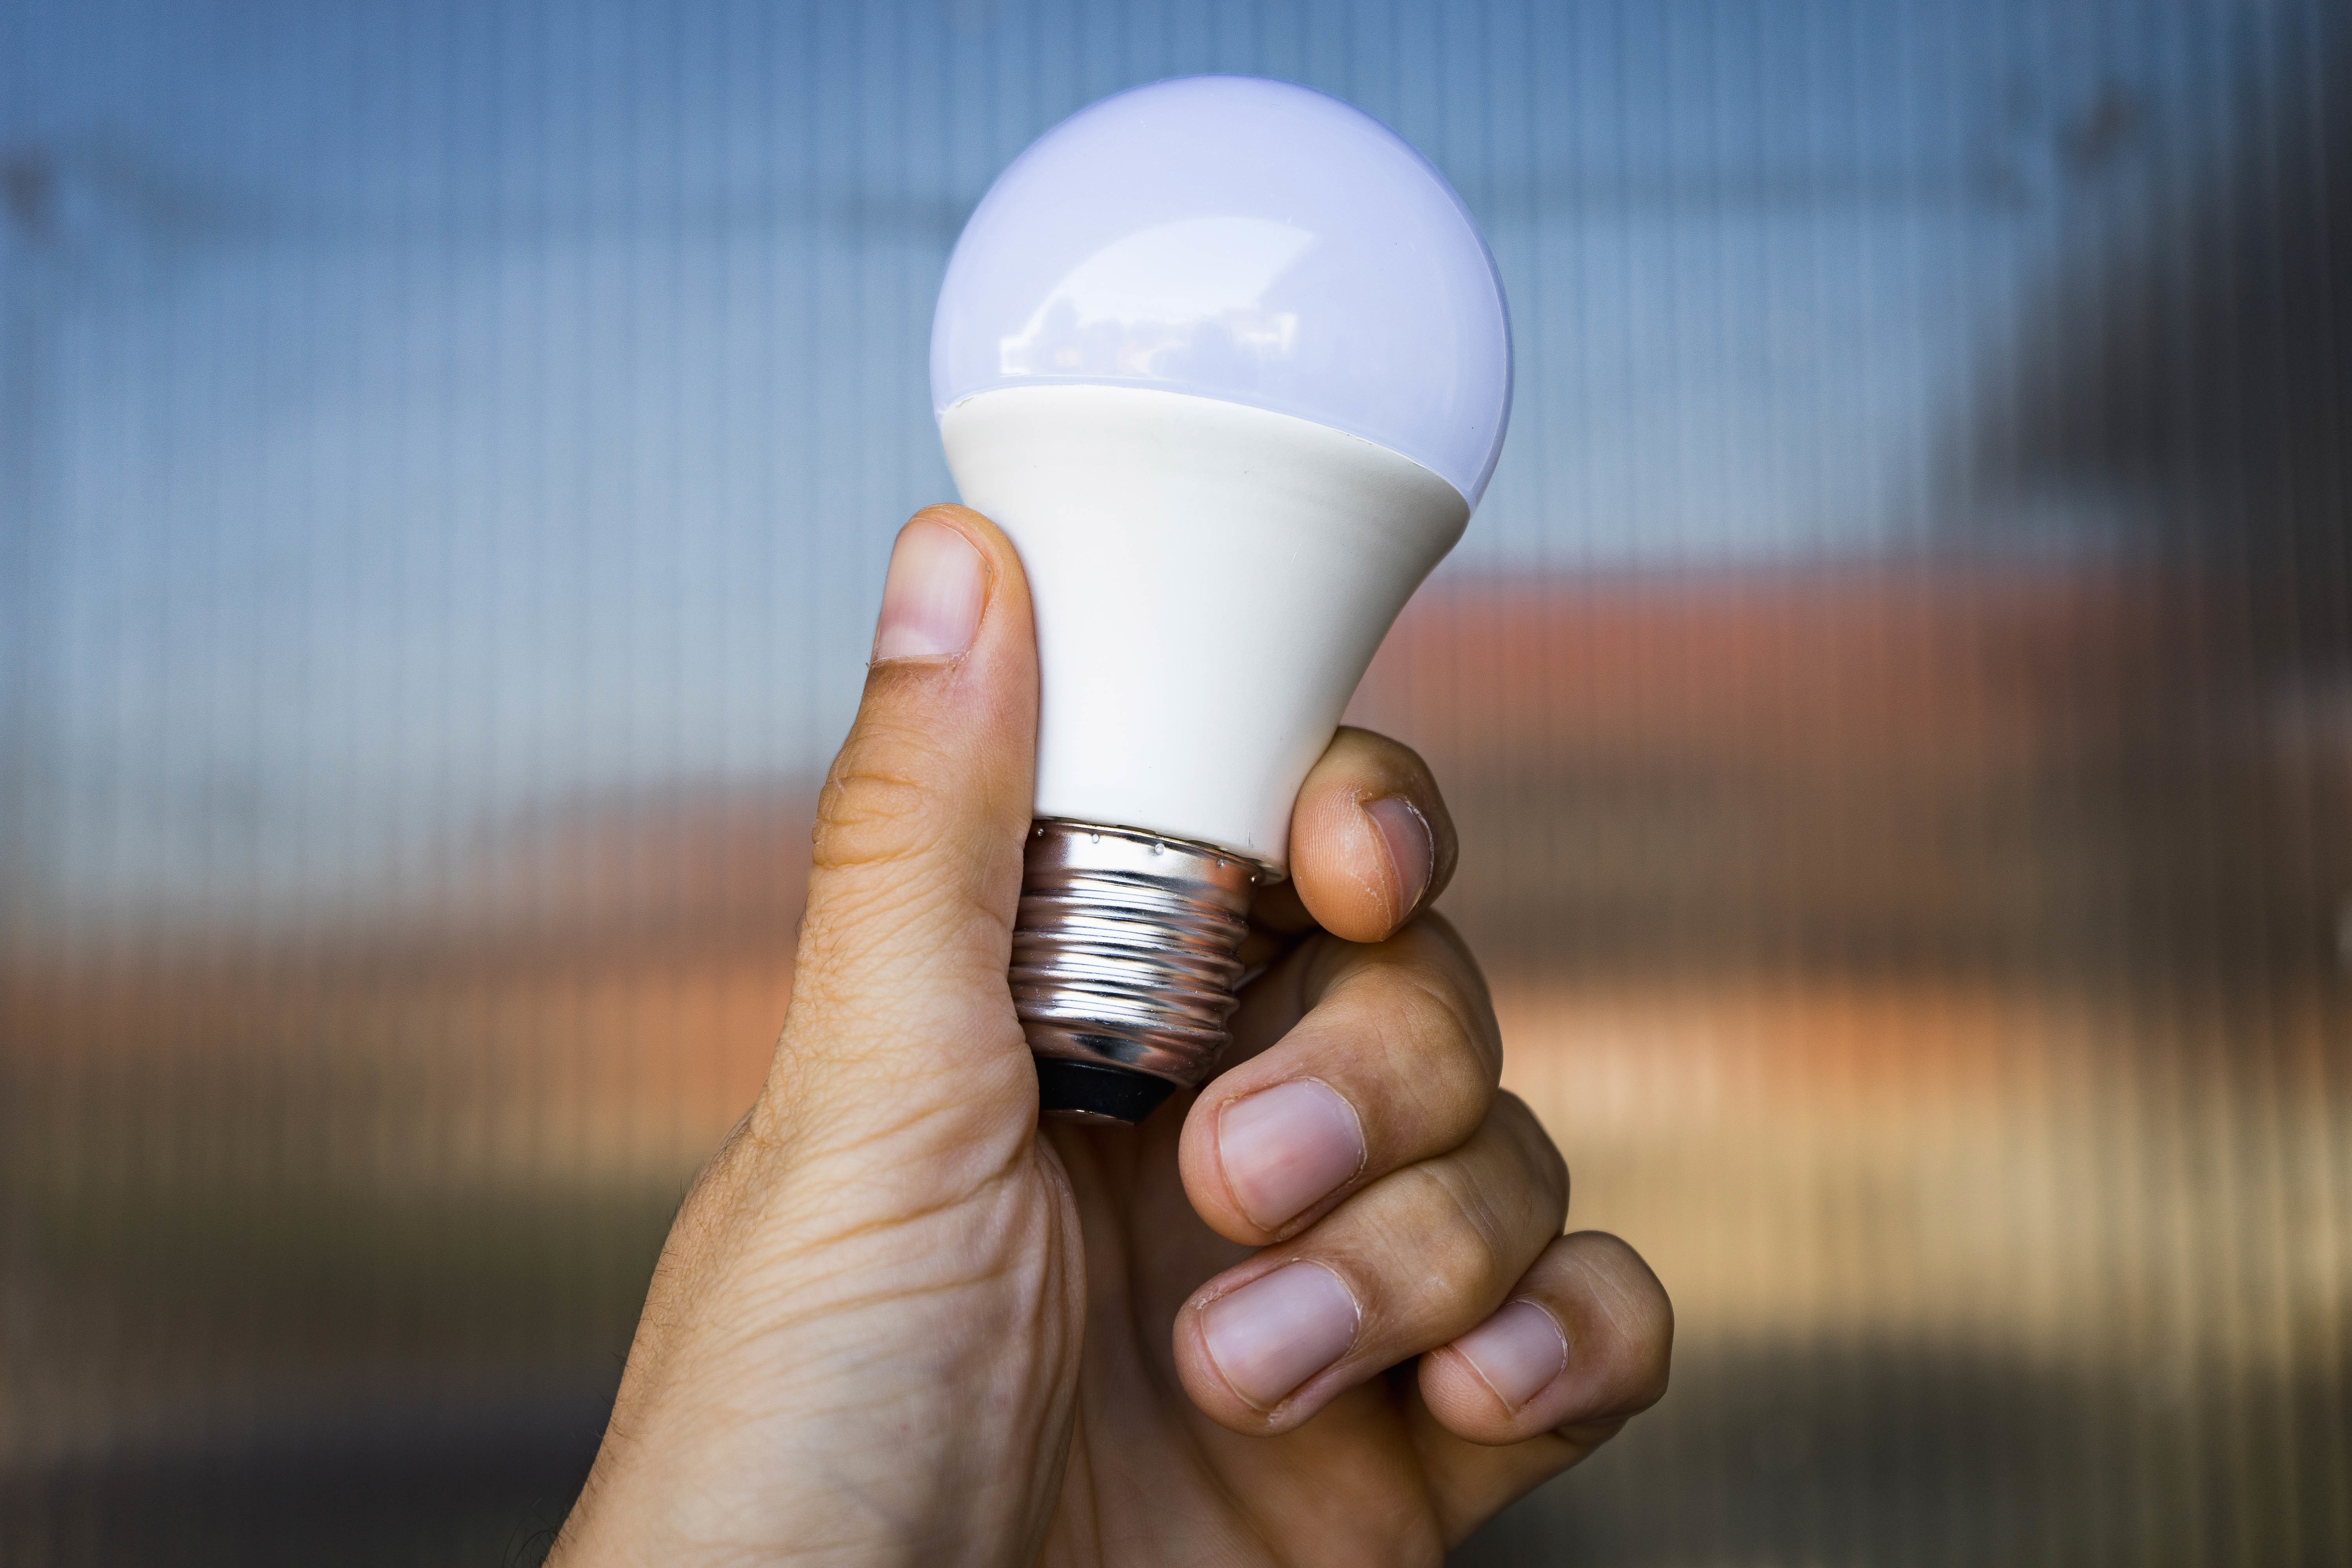 Close Up on a LED Light Bulb in the Hand